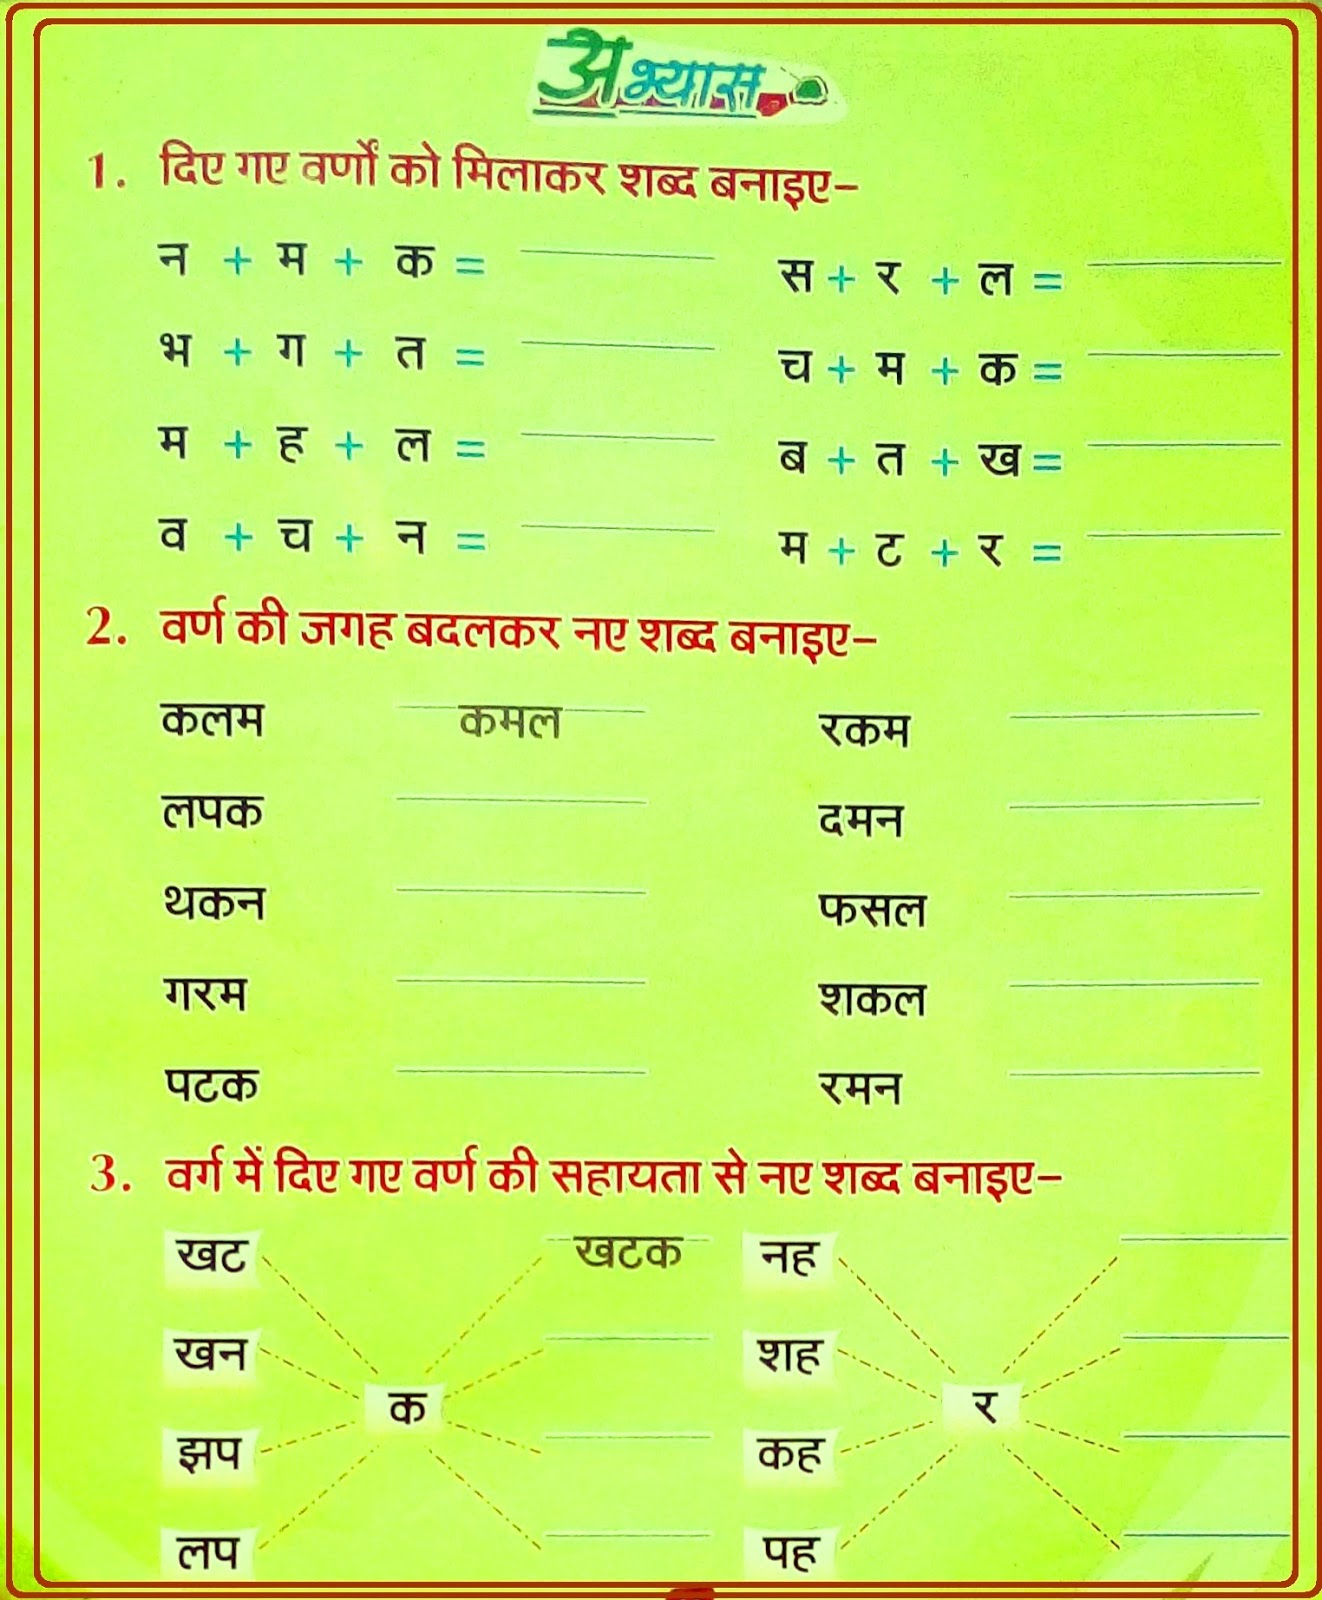 small resolution of Primary 1 Hindi Worksheets   Printable Worksheets and Activities for  Teachers